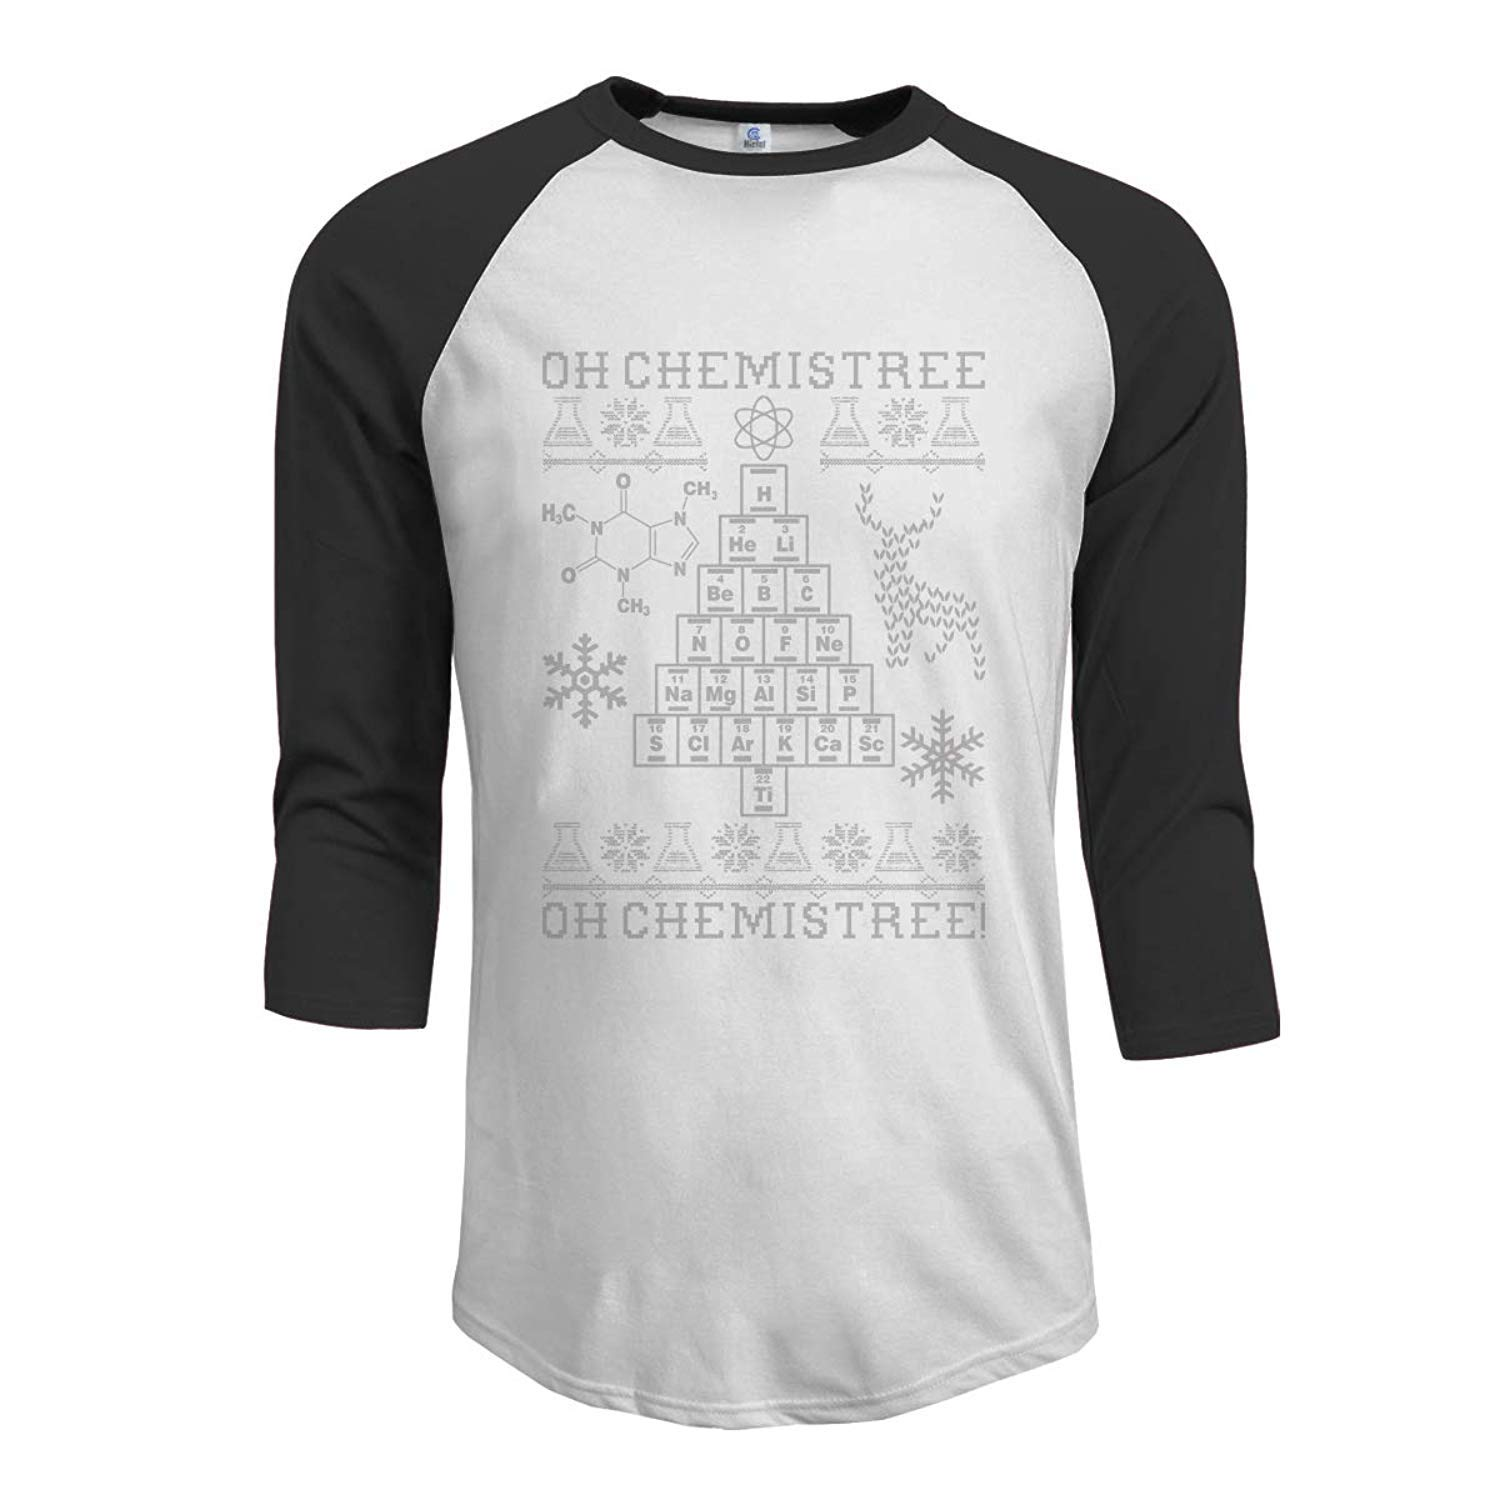 Oh Chemistree Oh Chemistree Ugly Christmas Chemistry Adult Mens Long-Sleeved T-Shirt